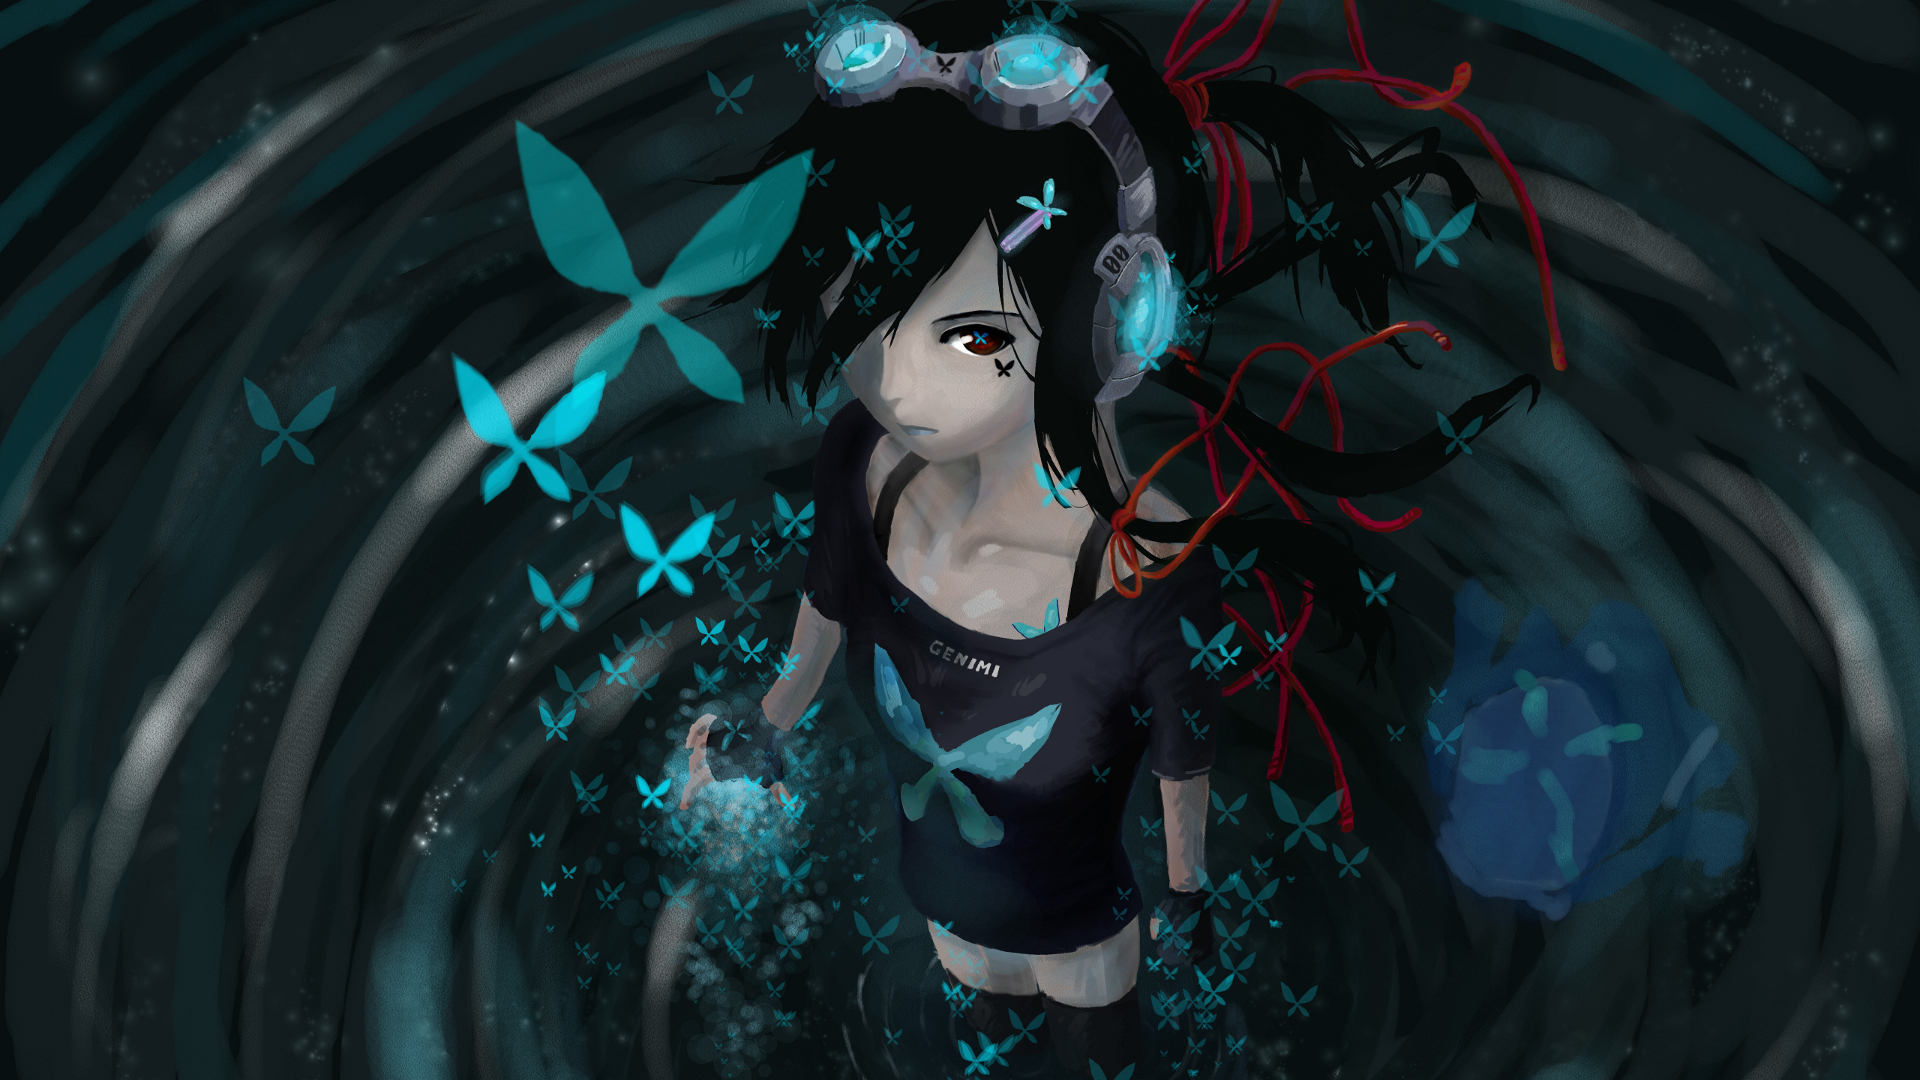 1920 x 1080 anime wallpapers wallpapersafari - Anime girl full hd ...